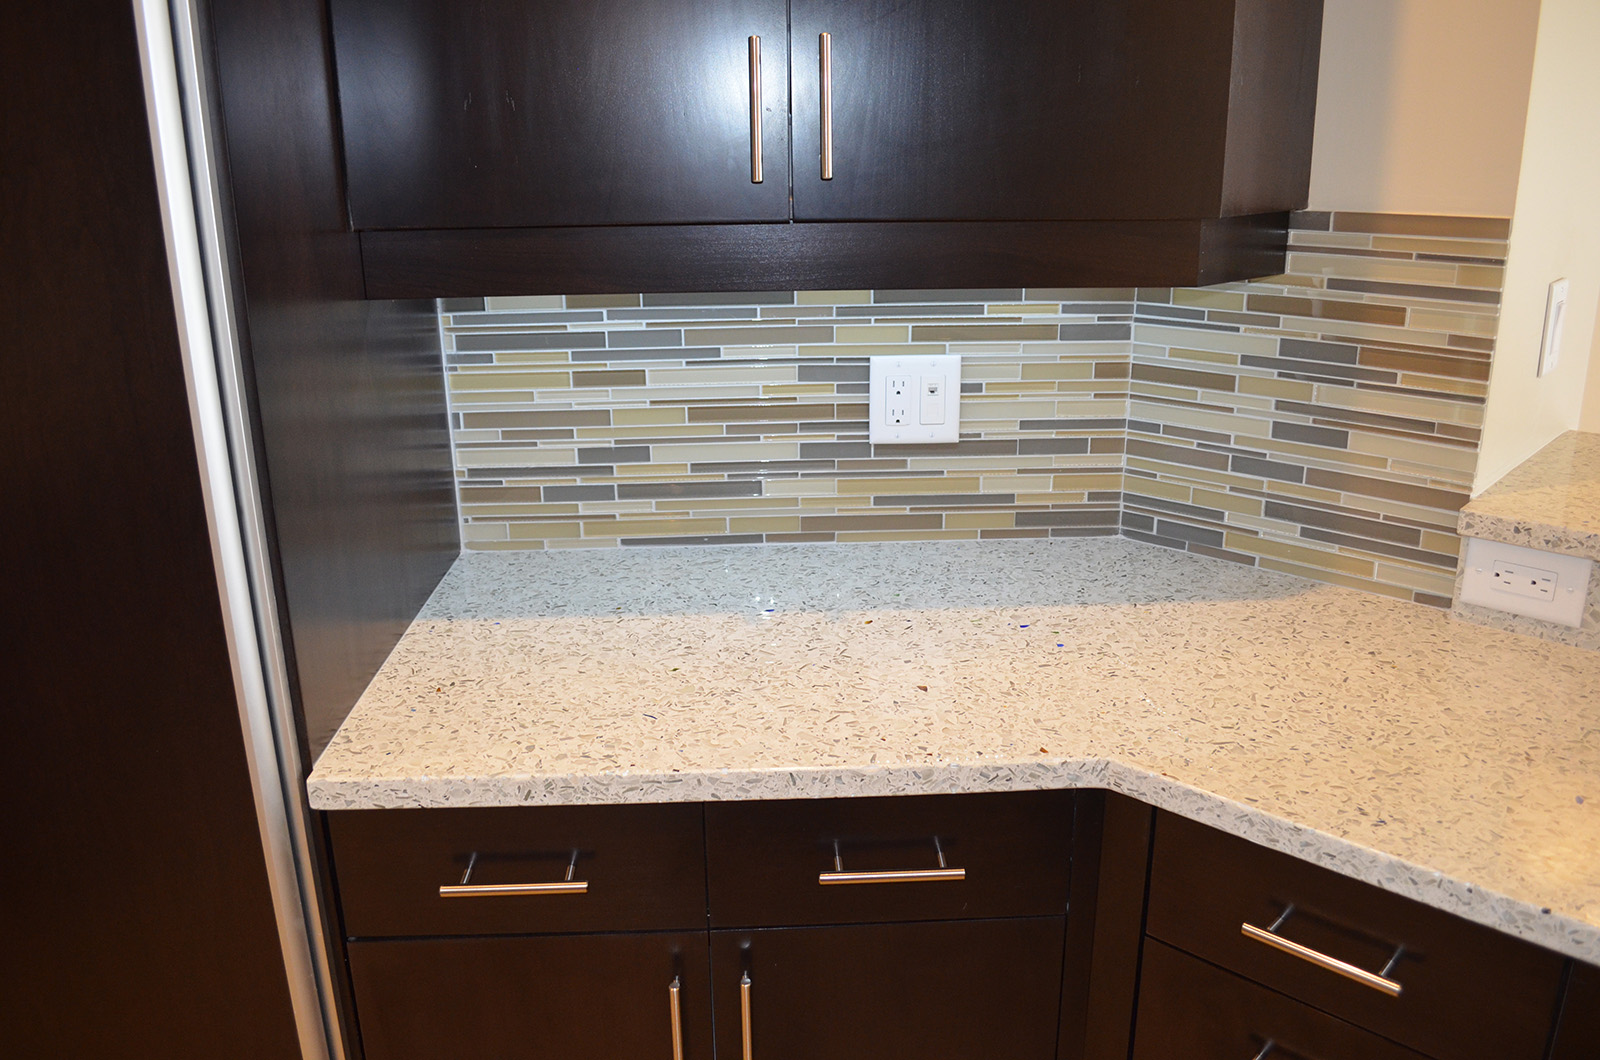 New Countertop Materials 2014 : ... Cabinet Refacing New Kitchens Jupiter Florida Countertops